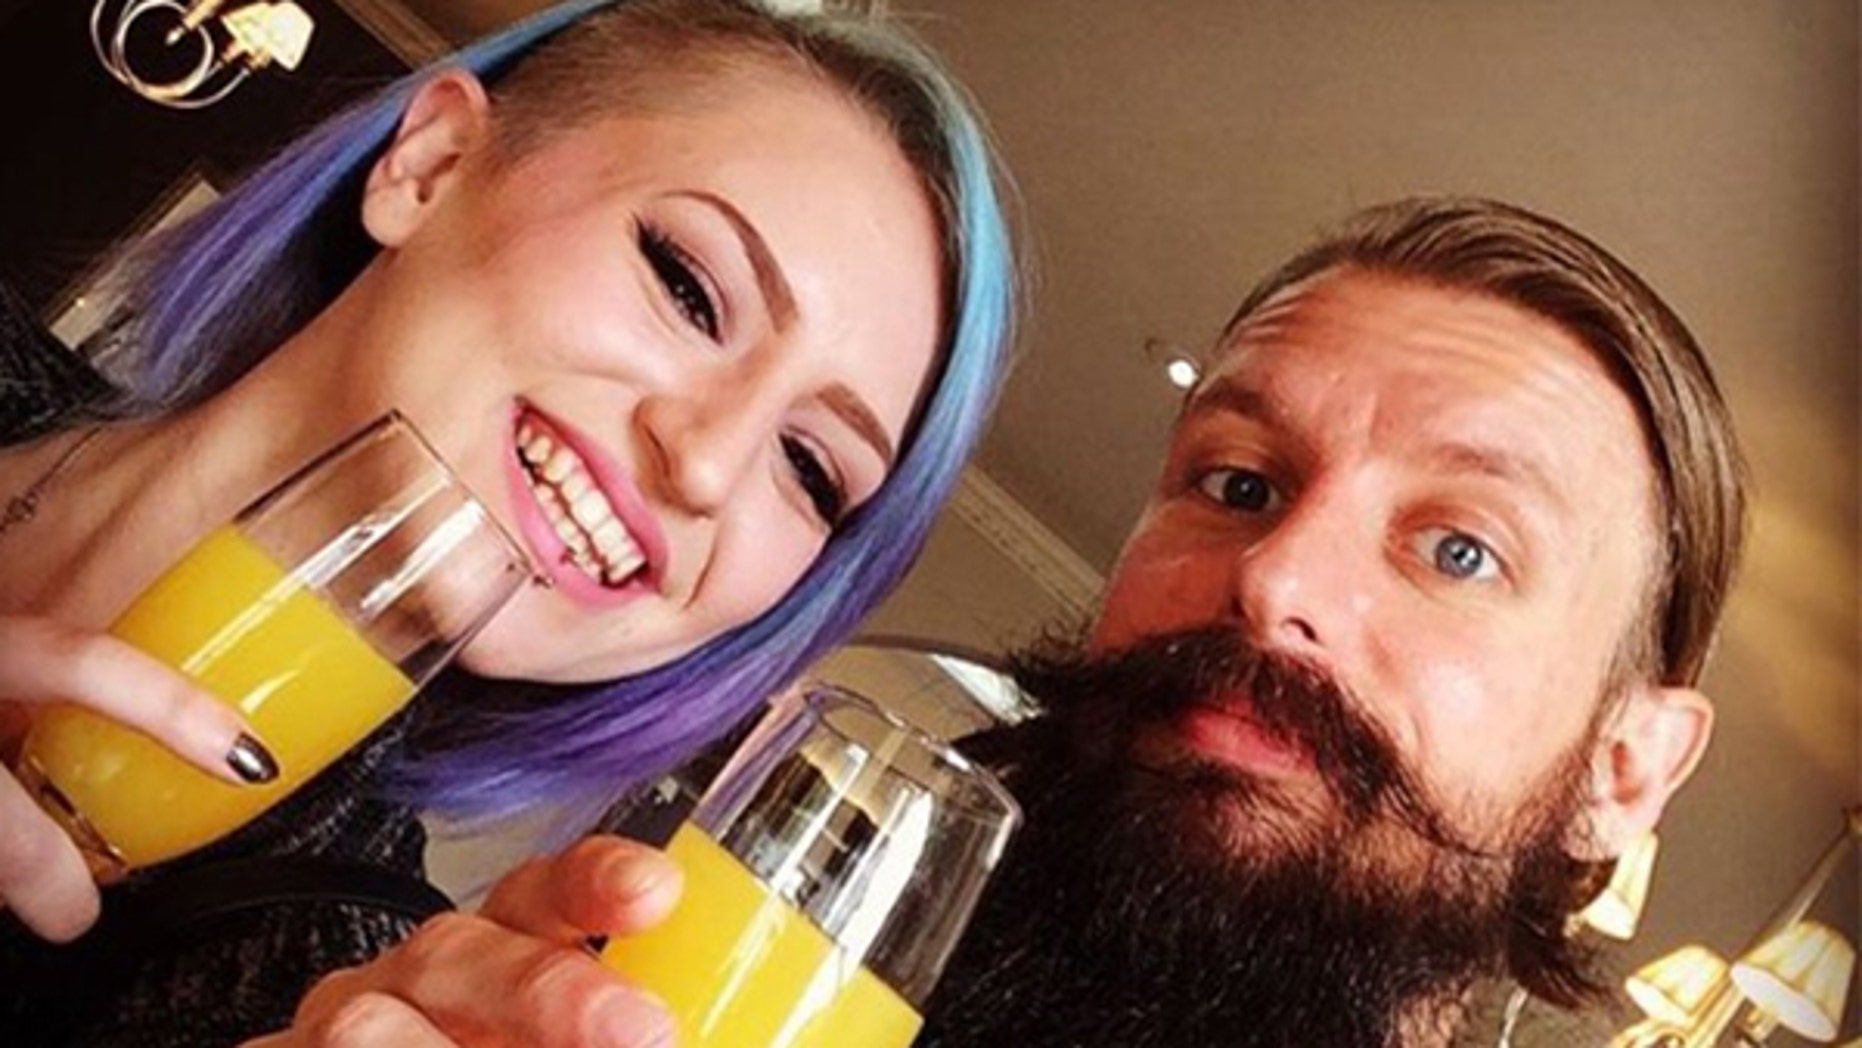 The father-daughter duo from Brighton, England have gone viral on Twitter with their honest message.